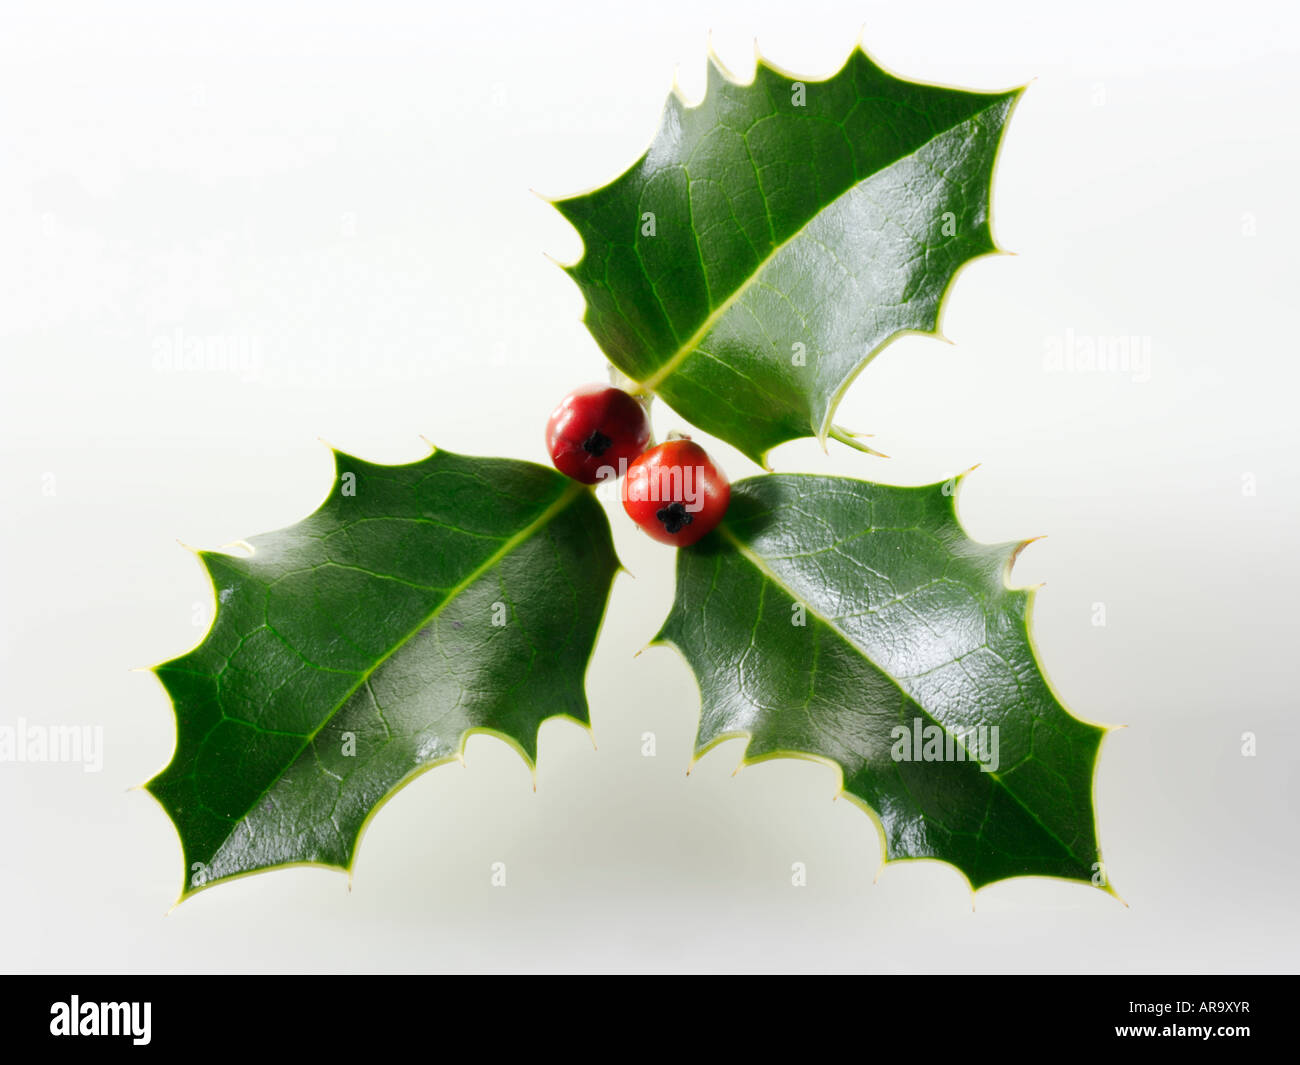 festive Christmas holly with berries against a white background - Stock Image